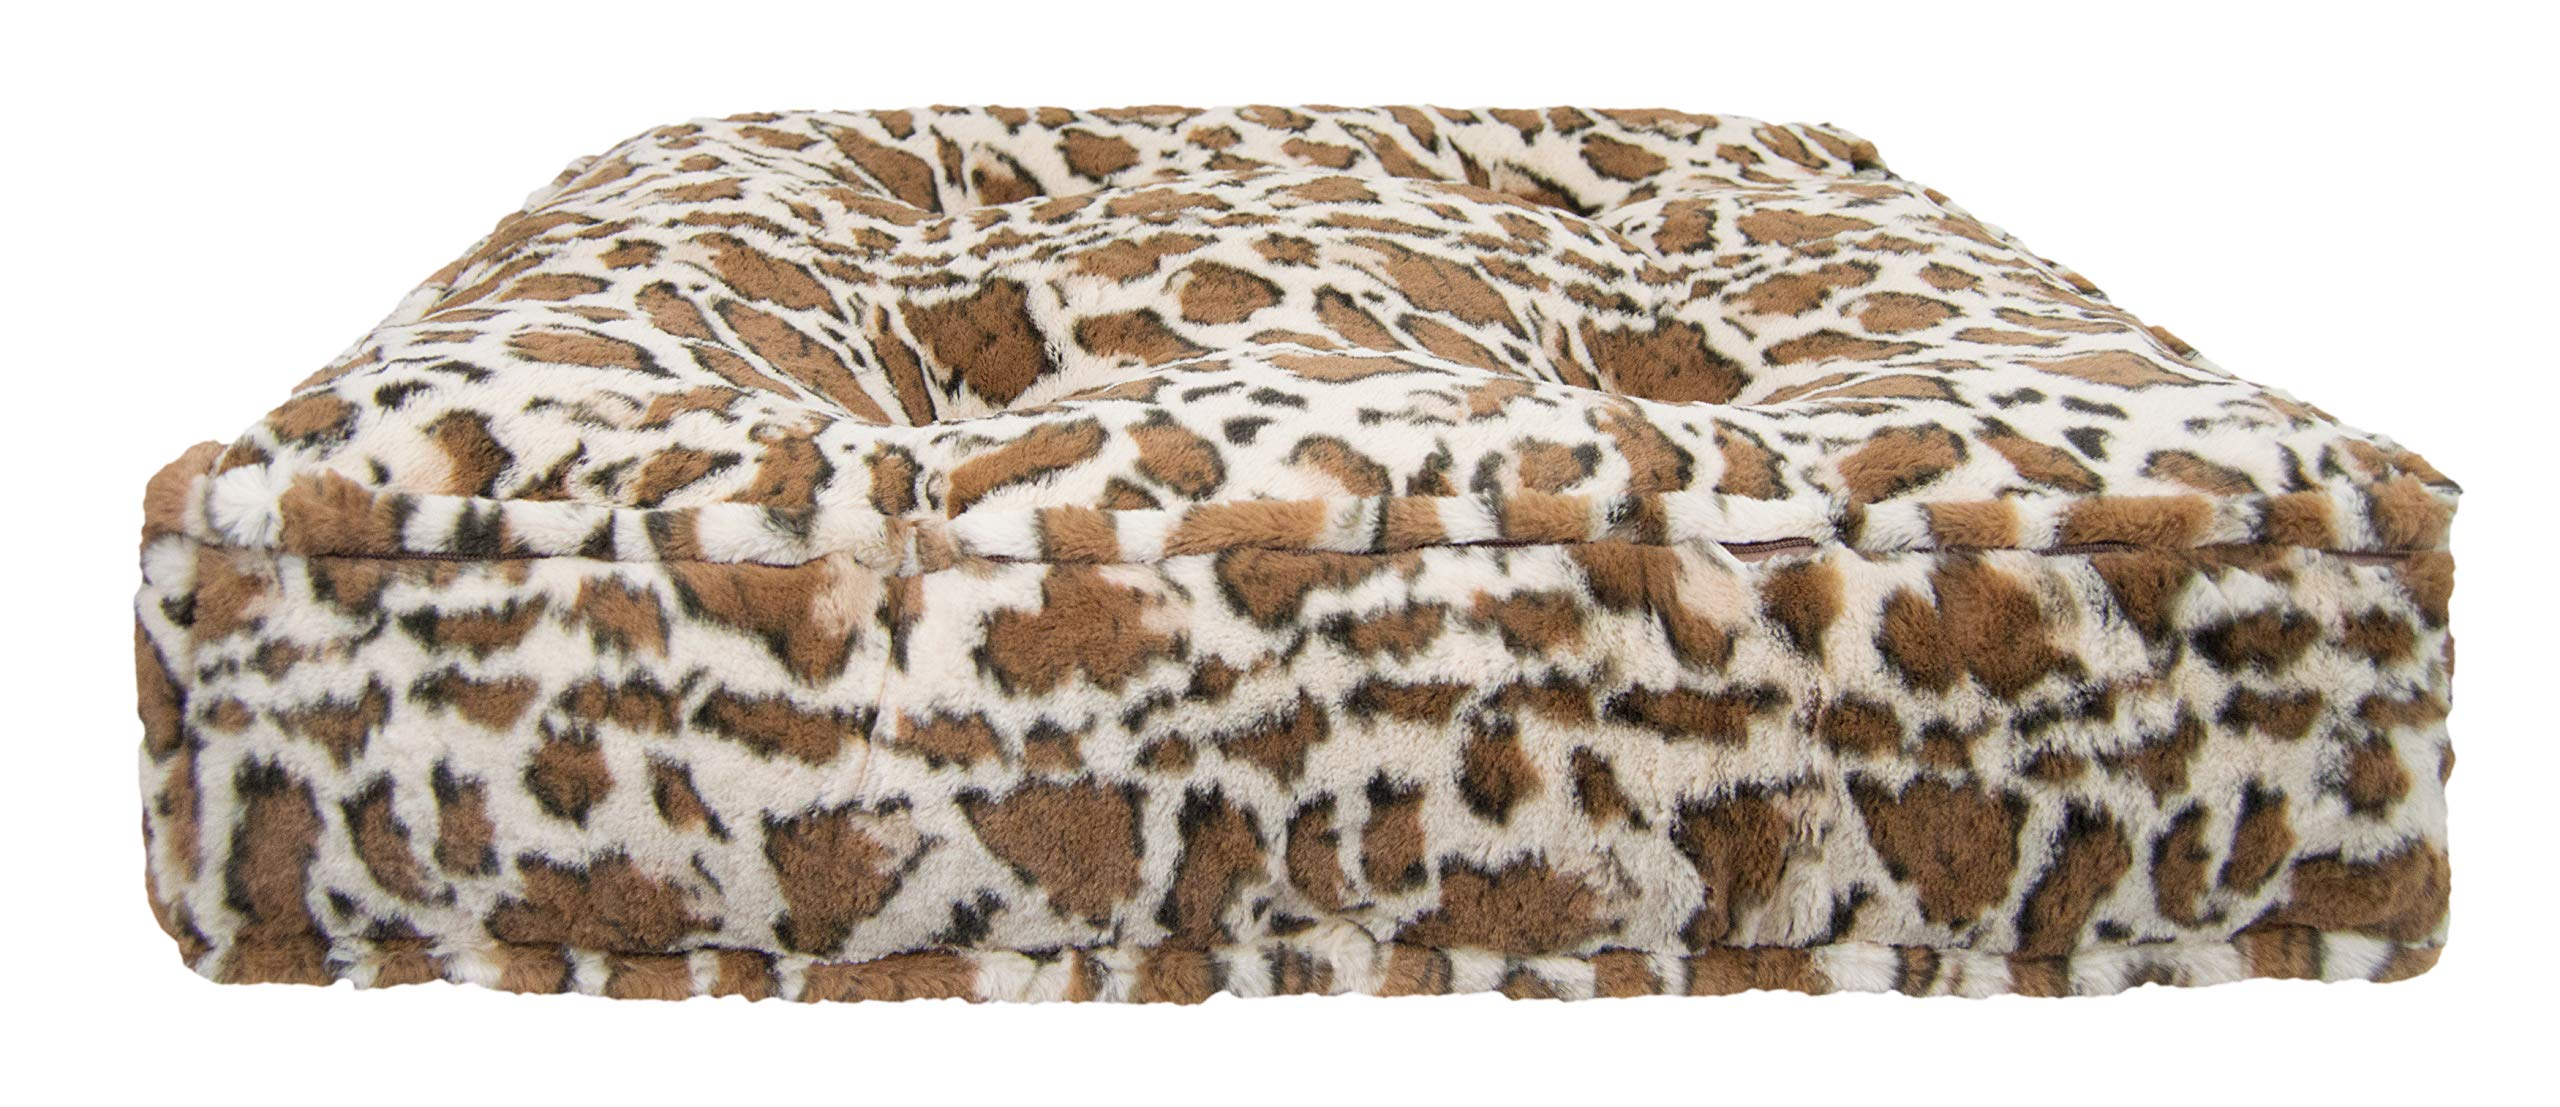 Bessie and Barnie Giraffe Extra Plush Faux Fur Sicilian Rectangle Pet/Dog Bed (Multiple Sizes) by Bessie + Barnie (Image #2)